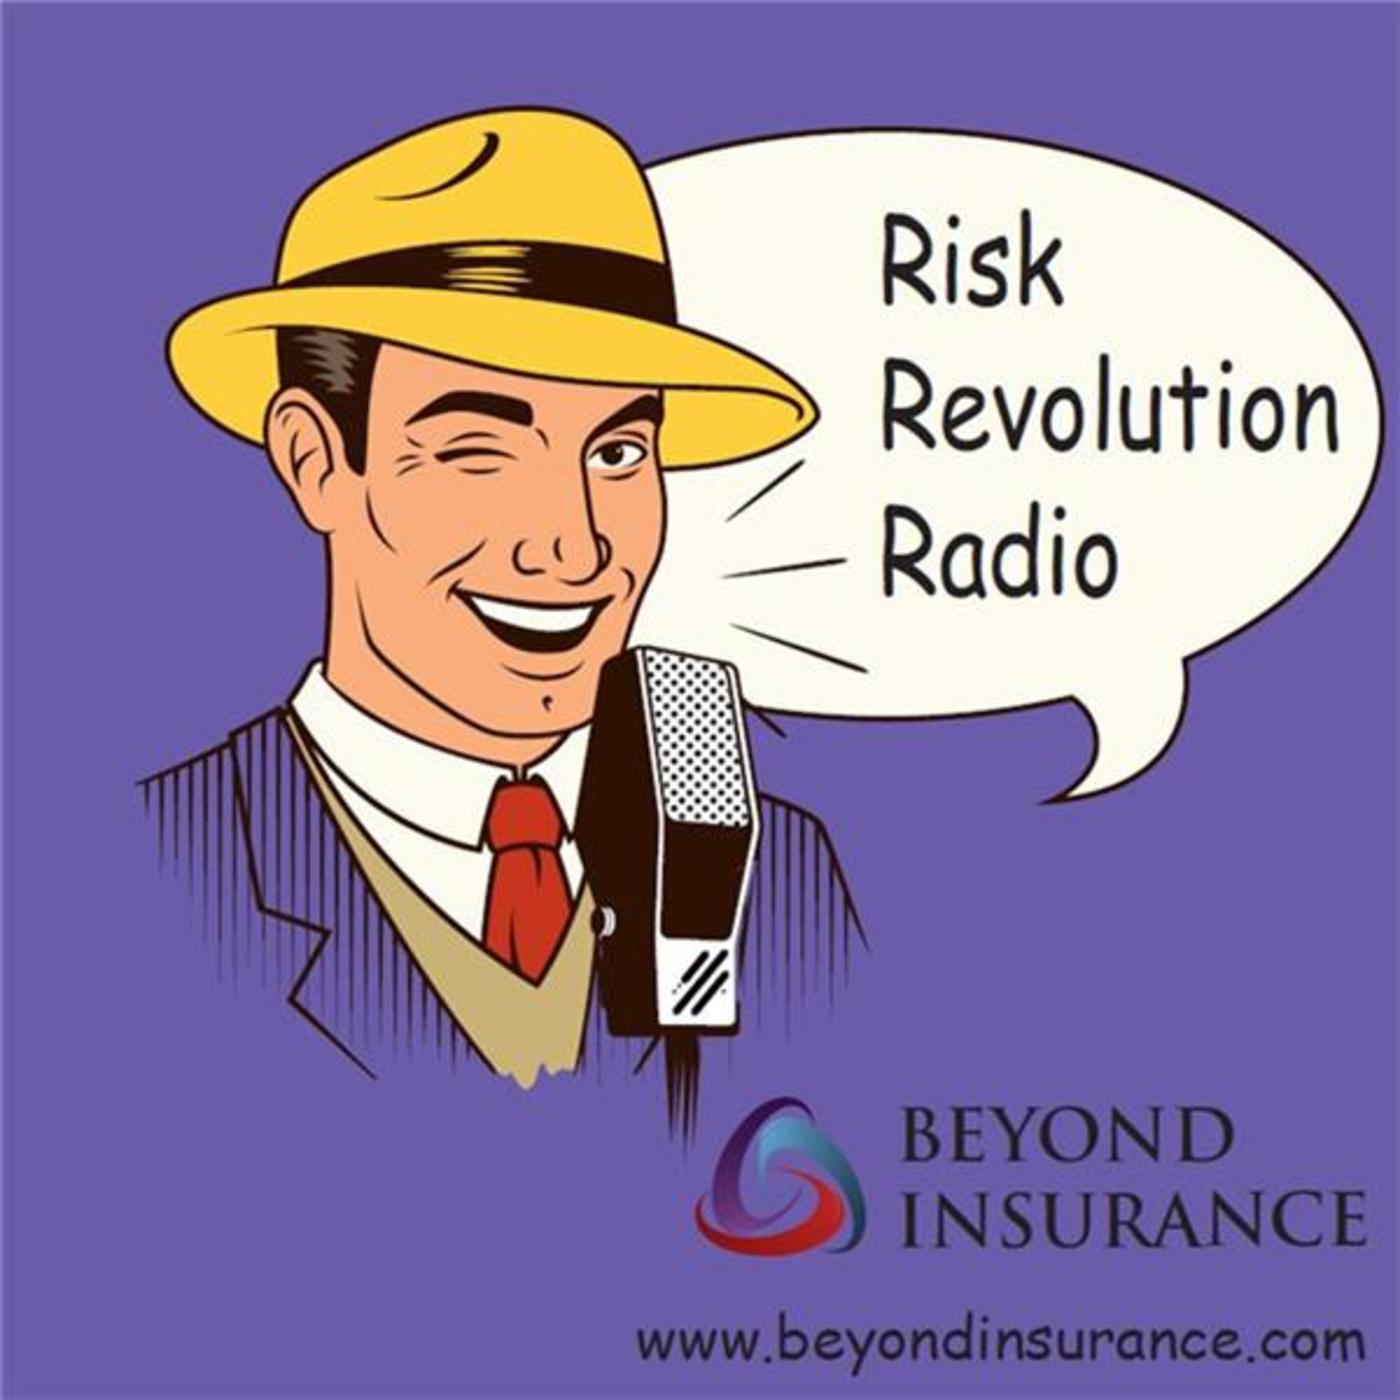 Risk Revolution Radio